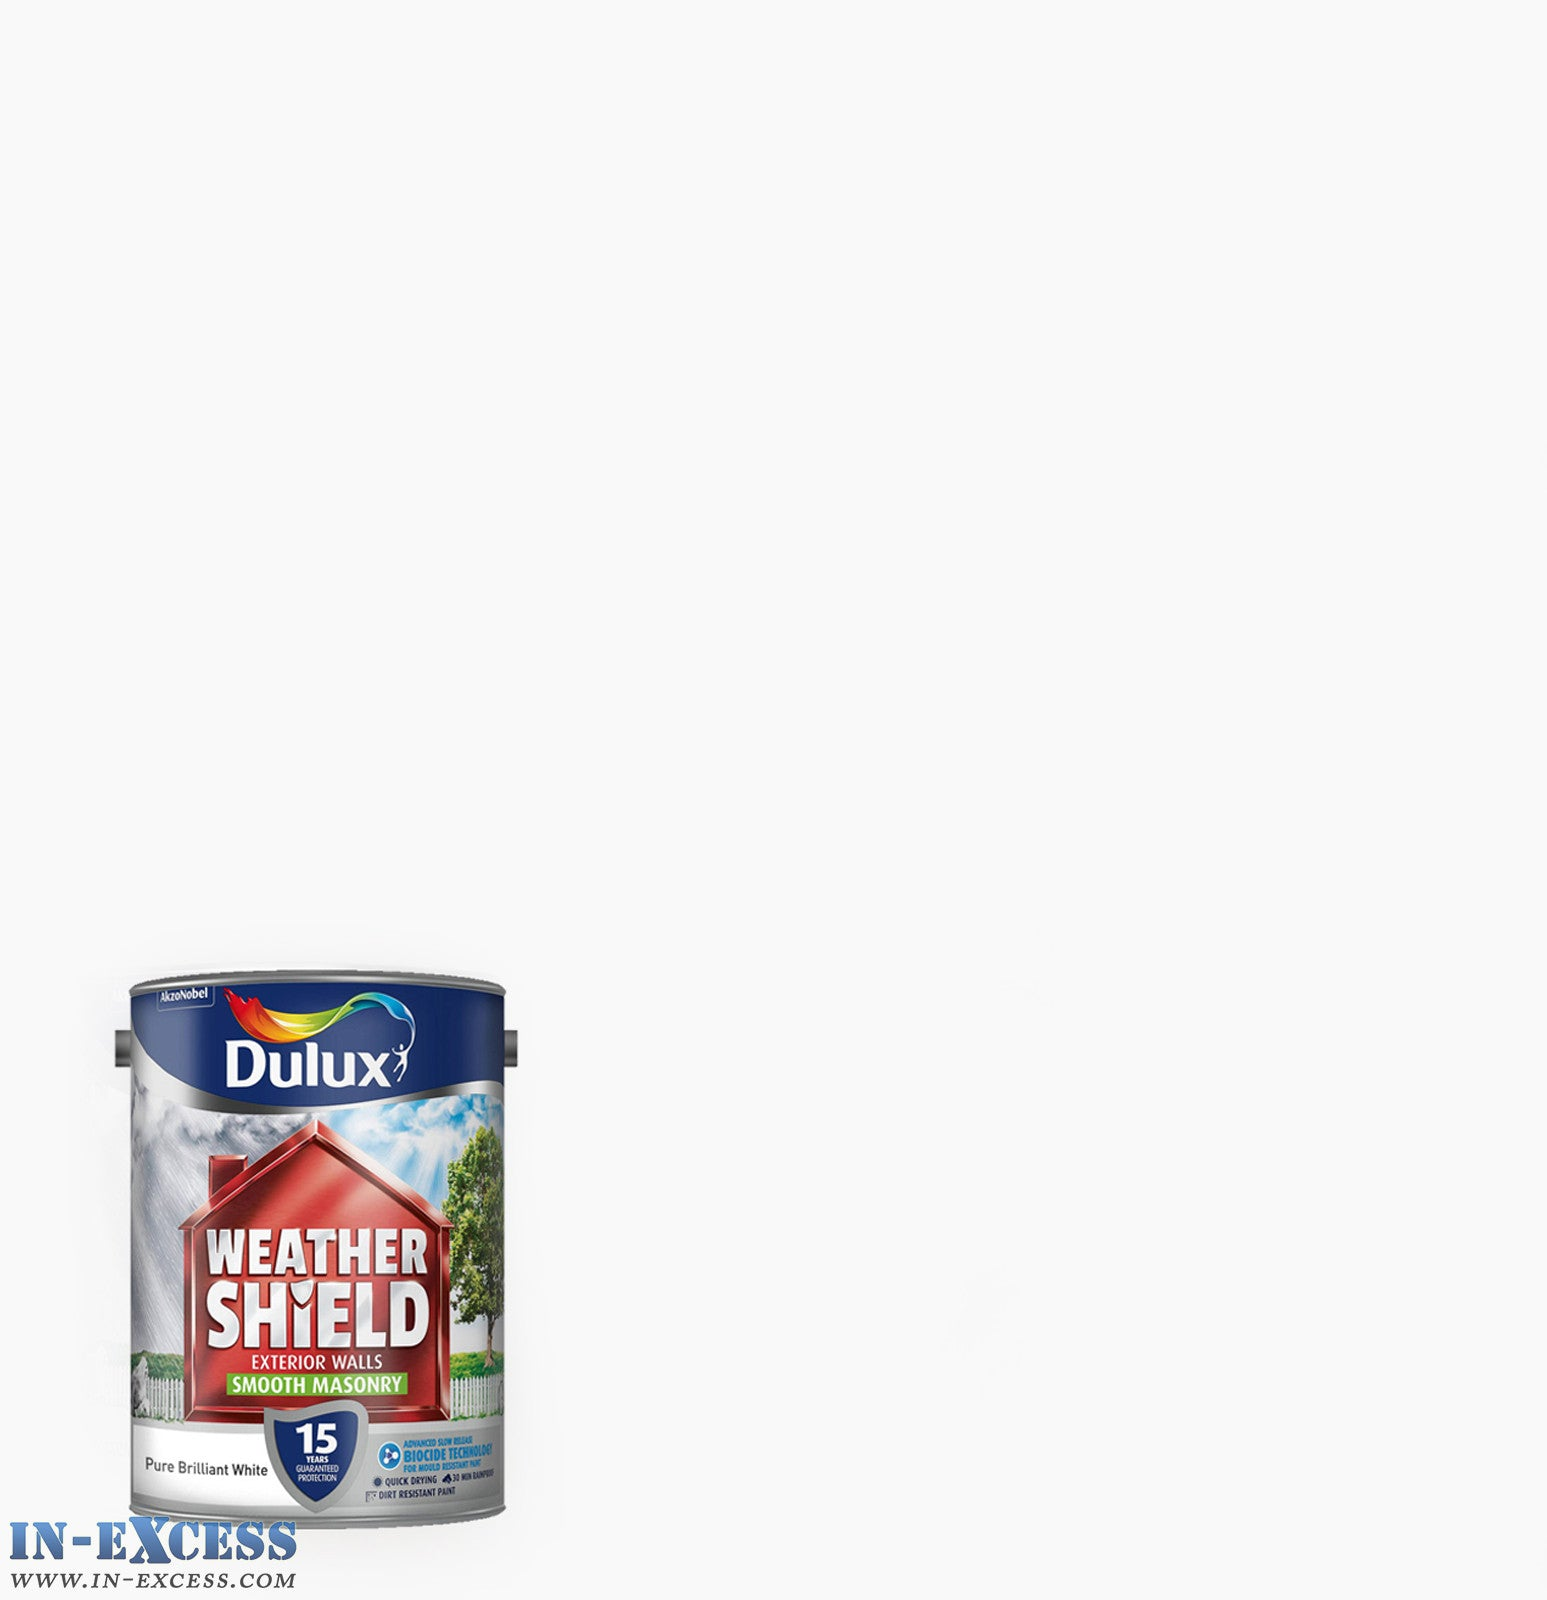 Dulux Weather Shield Exterior Walls Masonry Paint Textured Pure Bril In Excess Direct